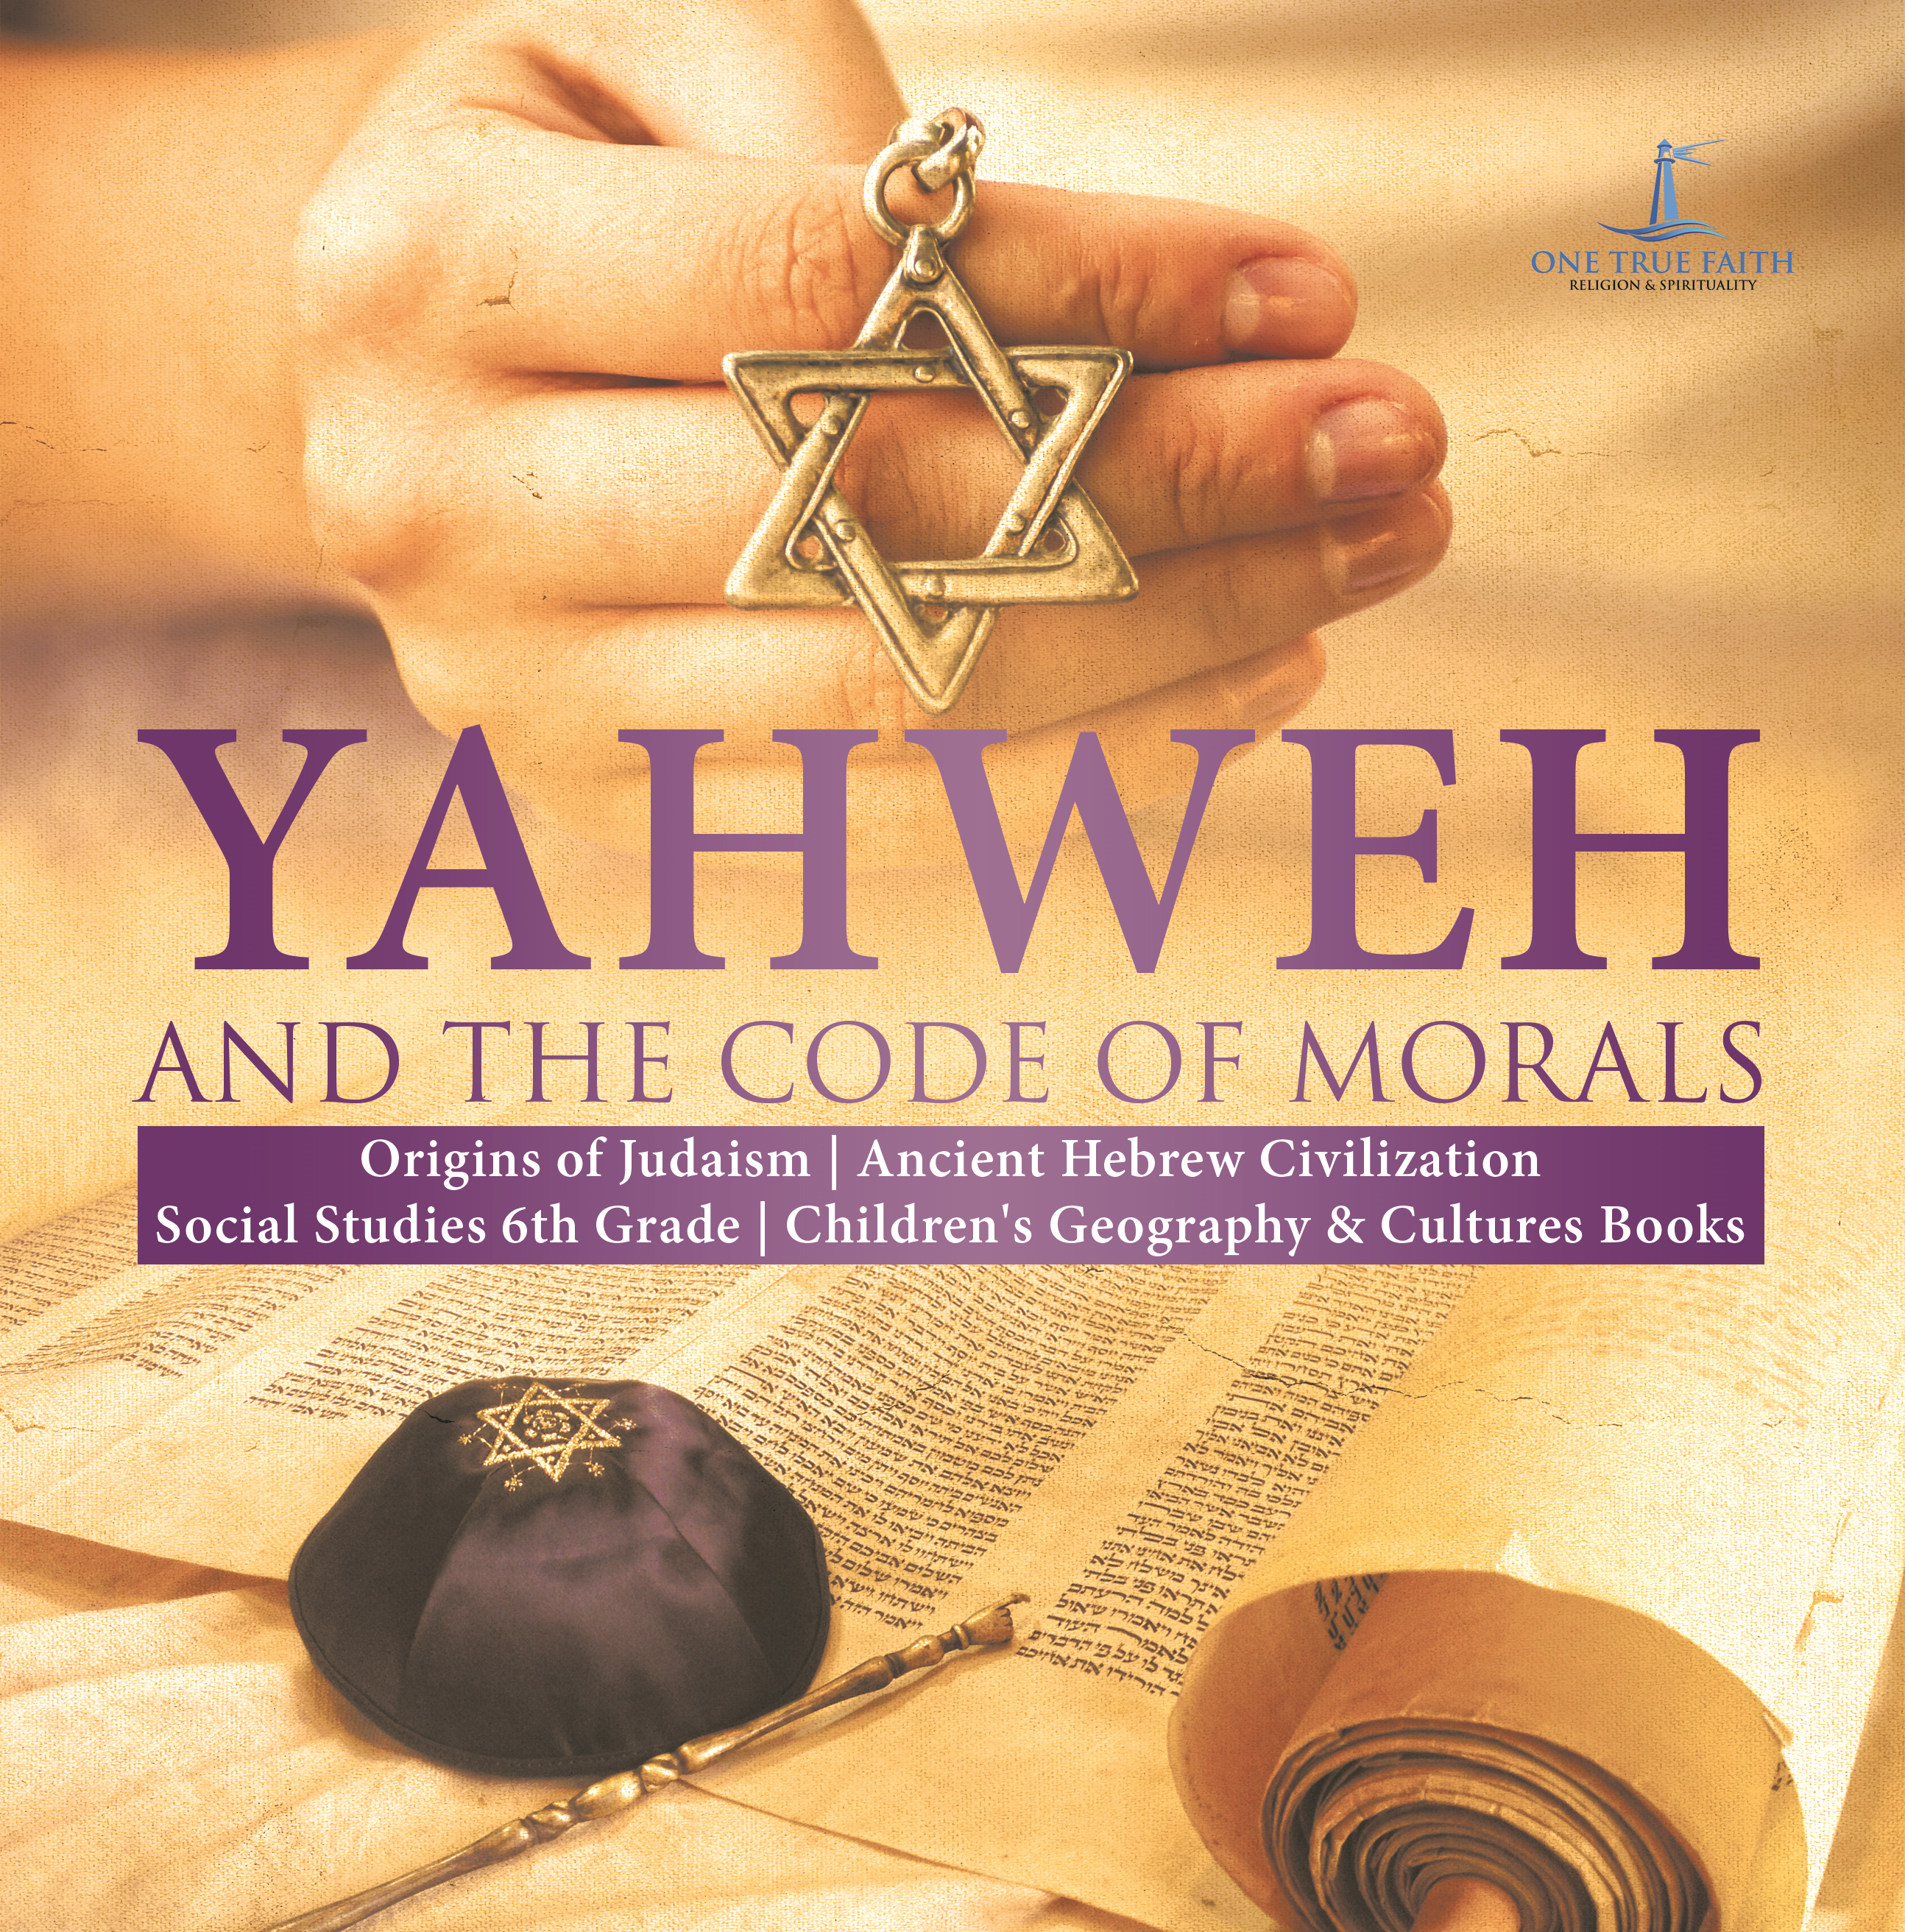 Yahweh and the Code of Morals | Origins of Judaism | Ancient Hebrew Civilization | Social Studies 6th Grade | Children's Geography & Cultures Books